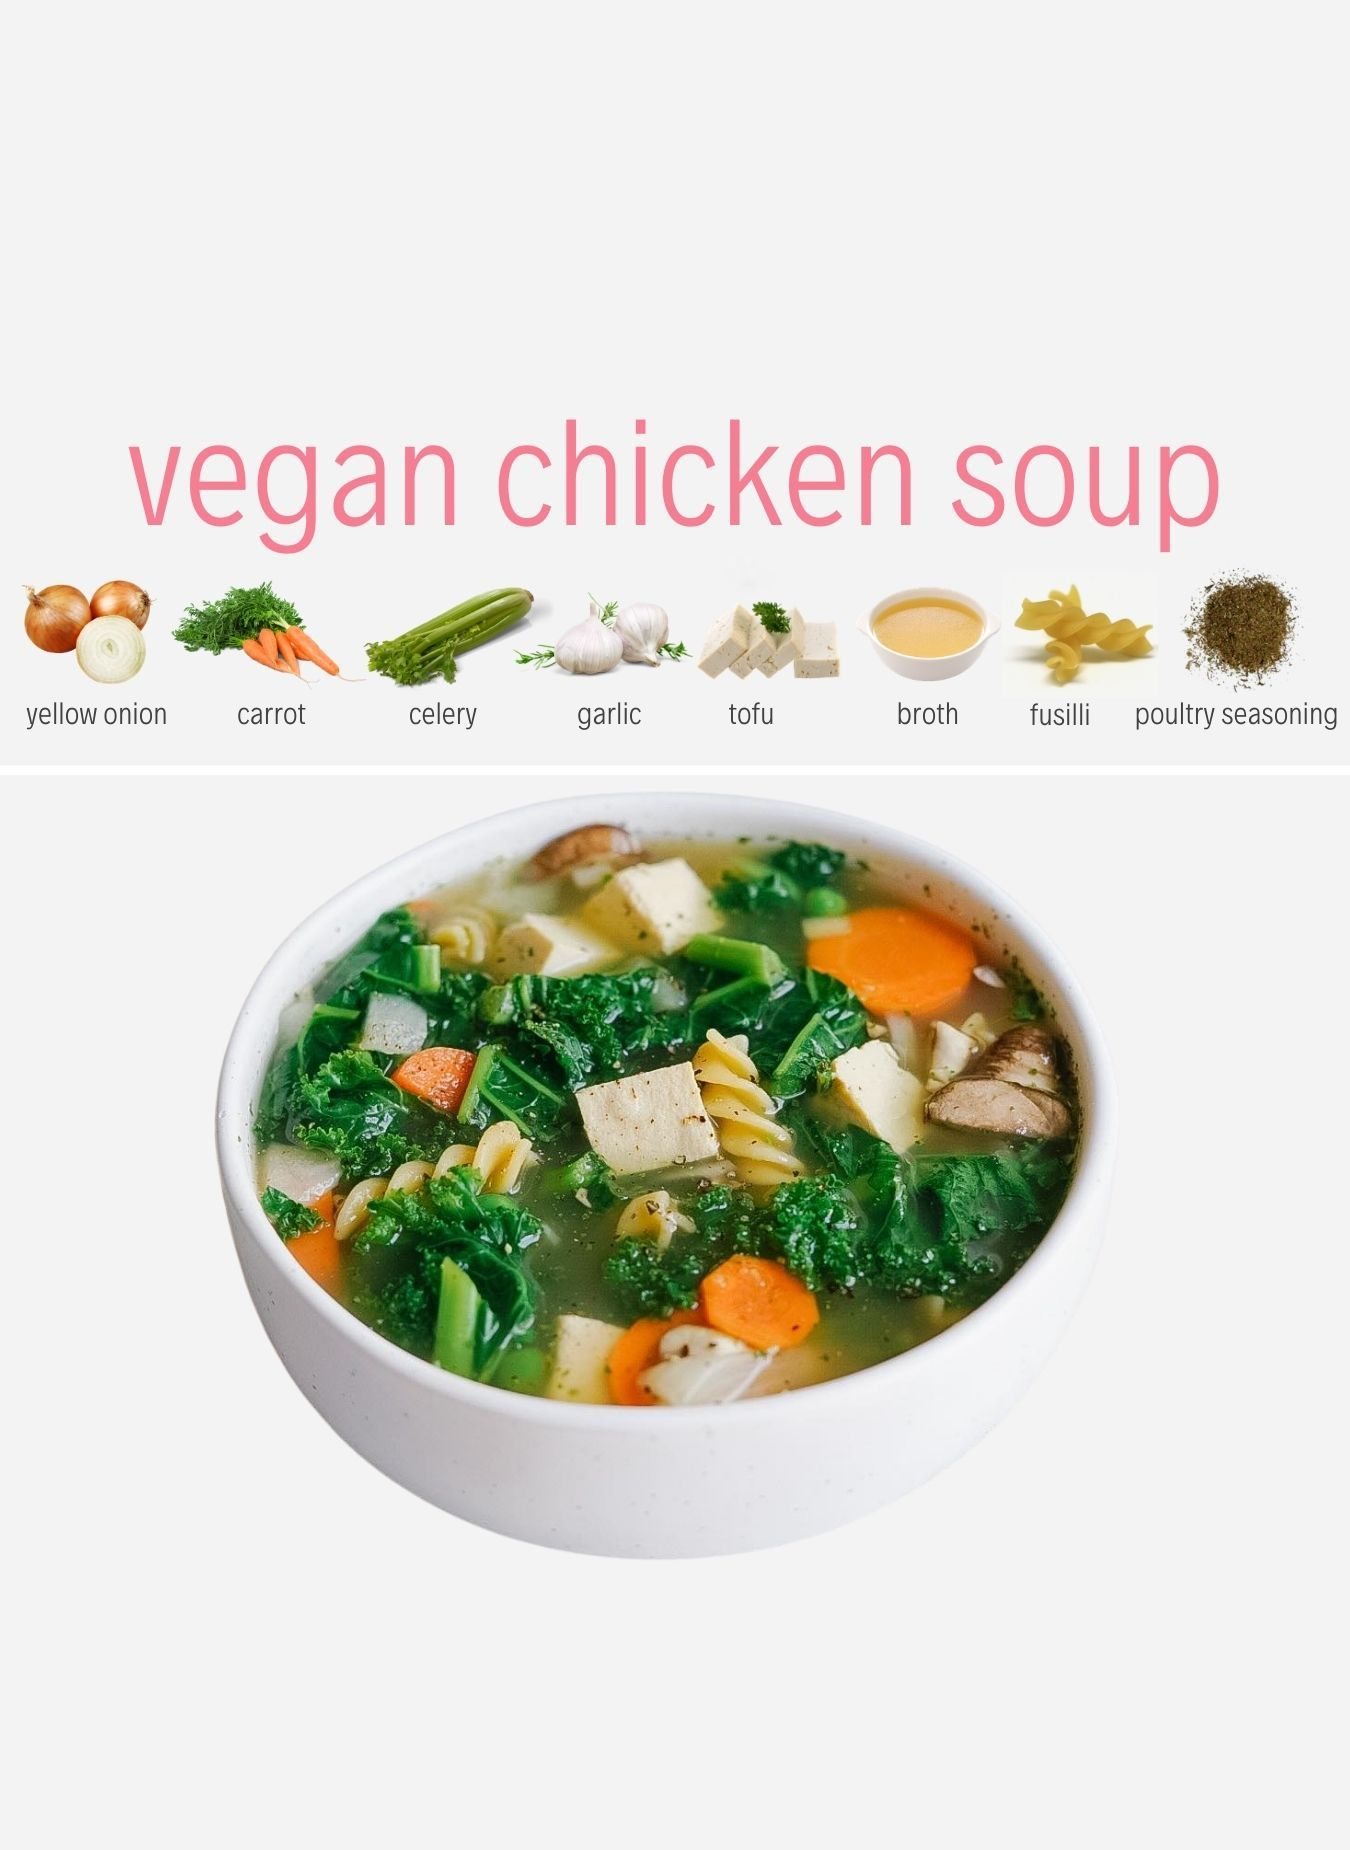 Vegan Chicken Noodle Soup With Tofu Kale And Mushrooms Plant You Recipe In 2020 Vegan Chicken Noodle Soup Whole Food Recipes Delicious Vegan Recipes